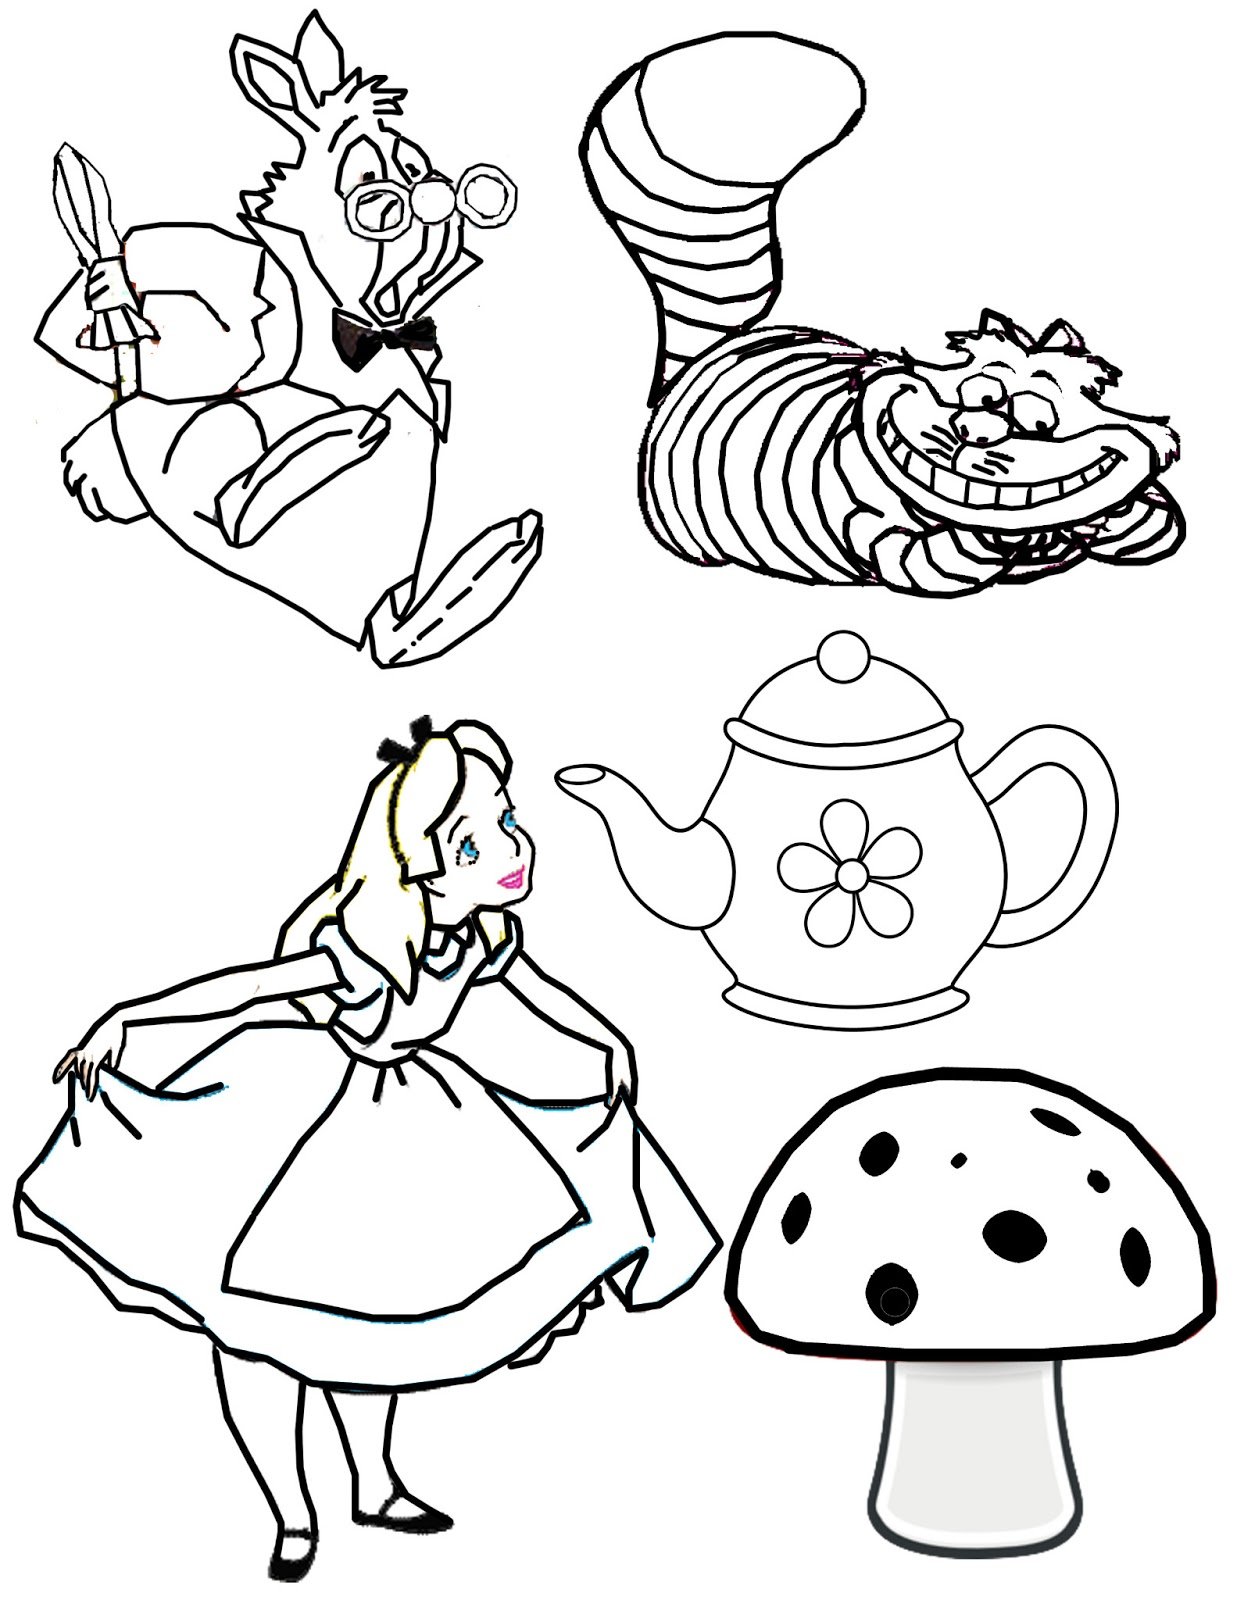 Clipartfox clip art tea. Disney mad character clipart